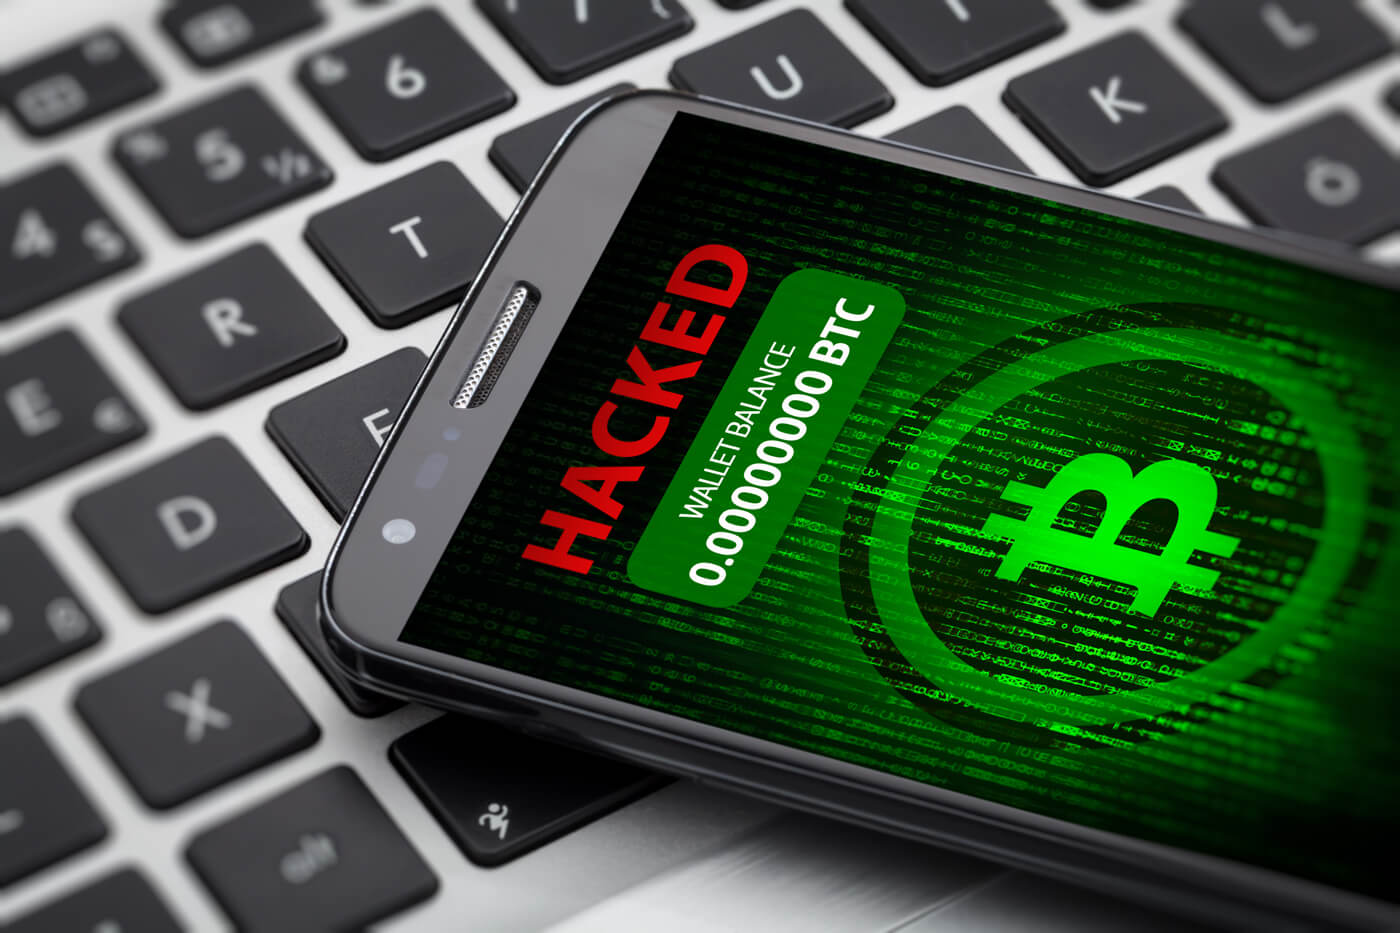 dForce hacker returns nearly $25 million in stolen cryptocurrency